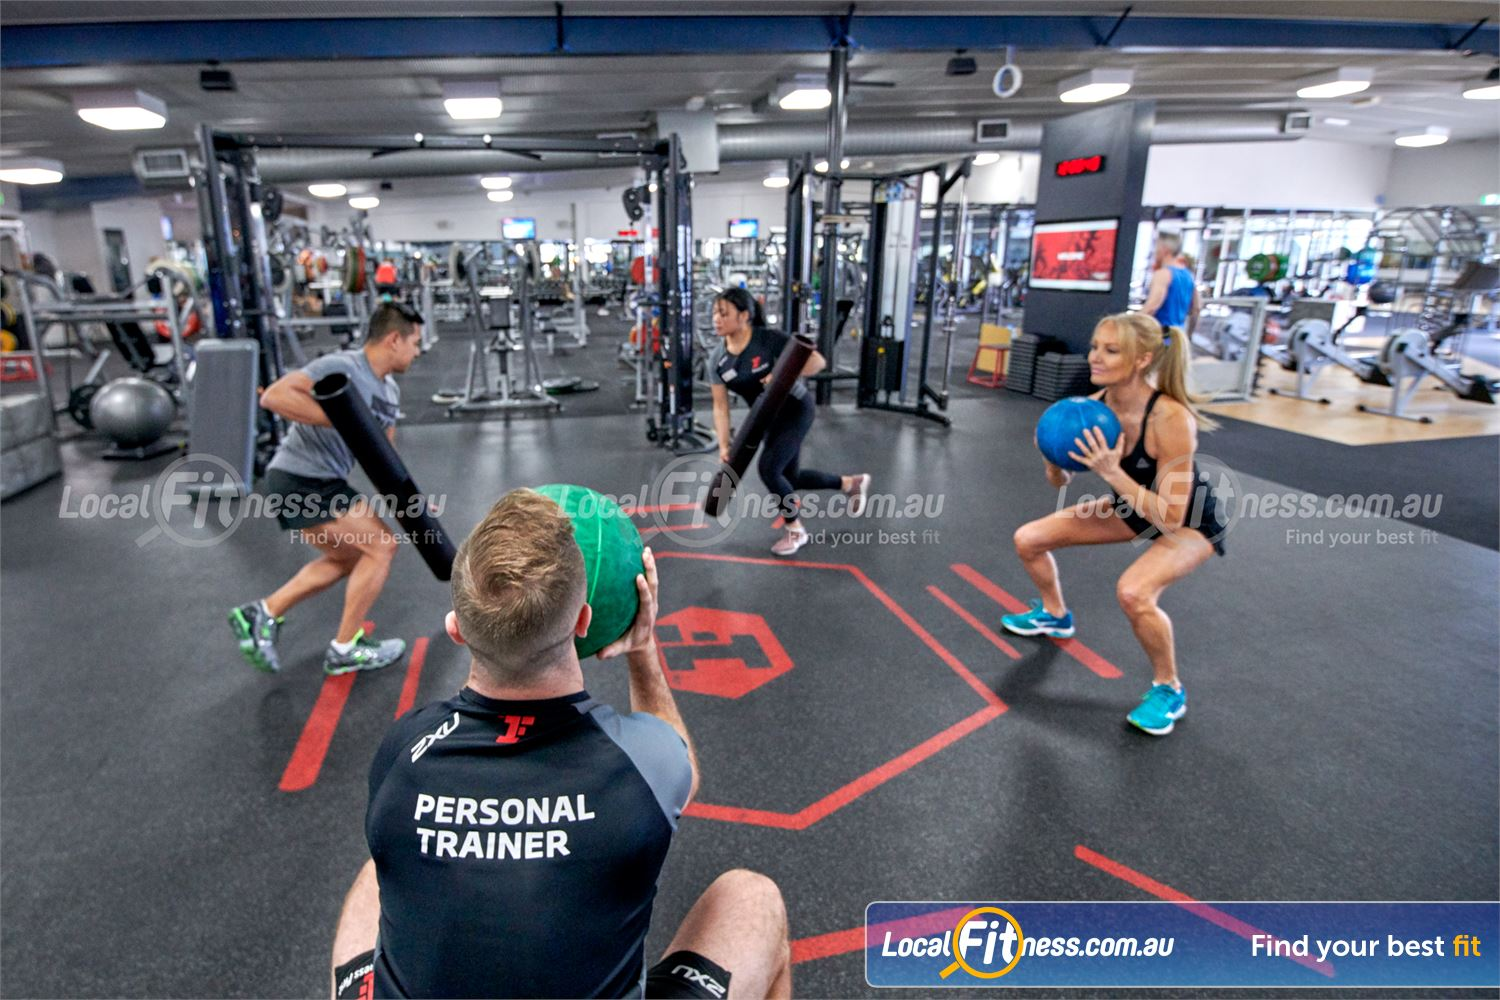 Fitness First Platinum The Zone King St Sydney Join our High-performance Sydney personal training class.